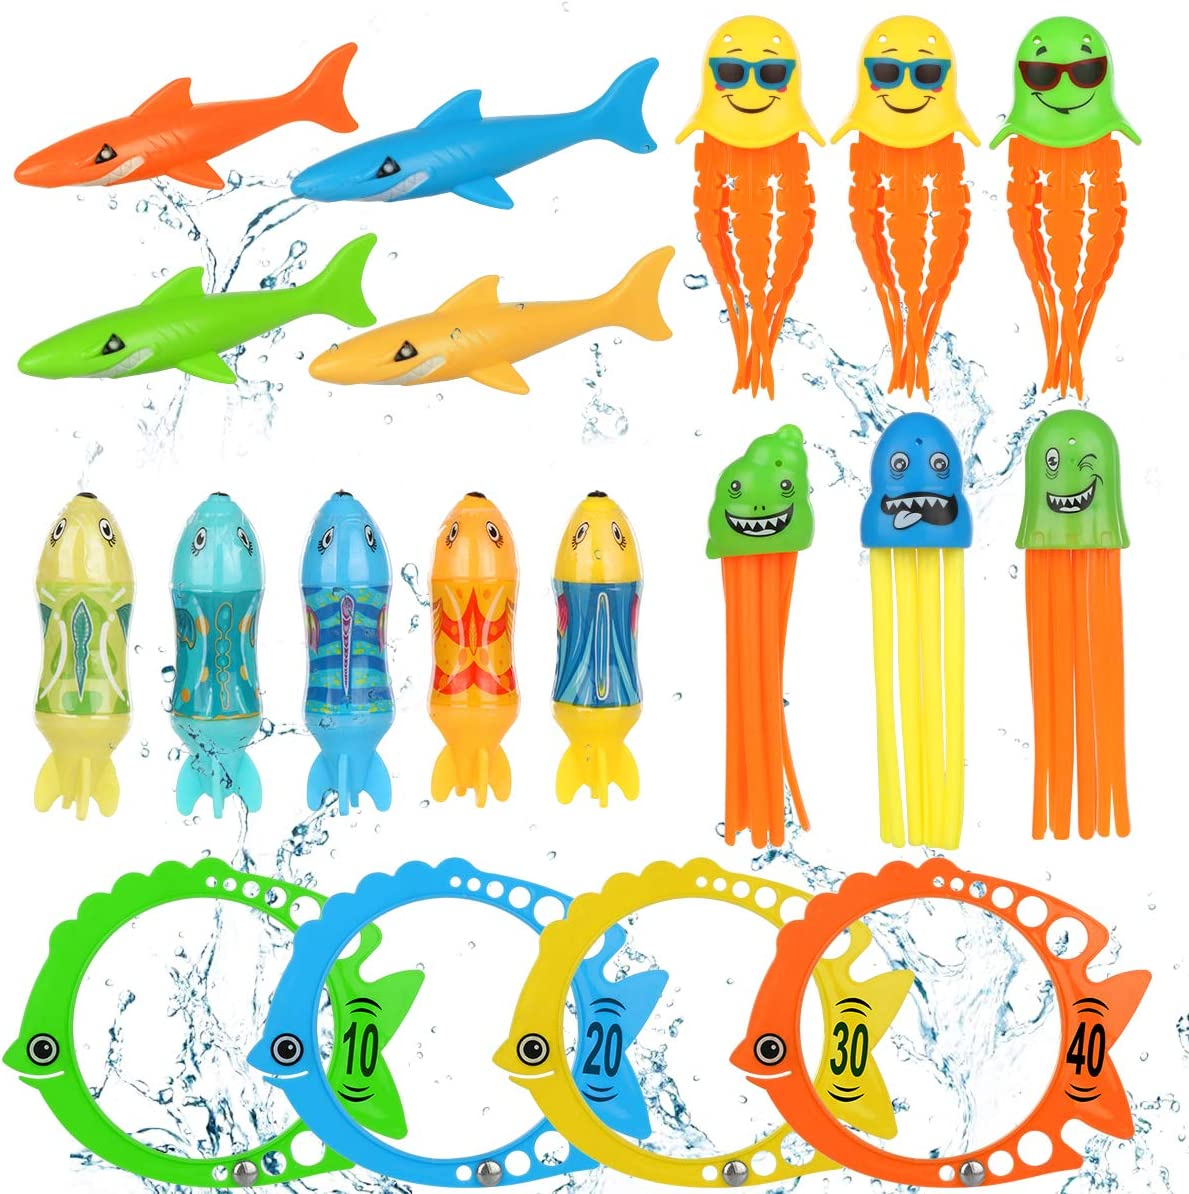 Pool Toys for Kids Diving Torpedo Toy Water Shark Fish Ring Stringy Octopus Water Game Diving & Swimming Training Underwater Summer Toys Gift for toddlers boys and girls age 3-10 8-10 3-5 Year Olds